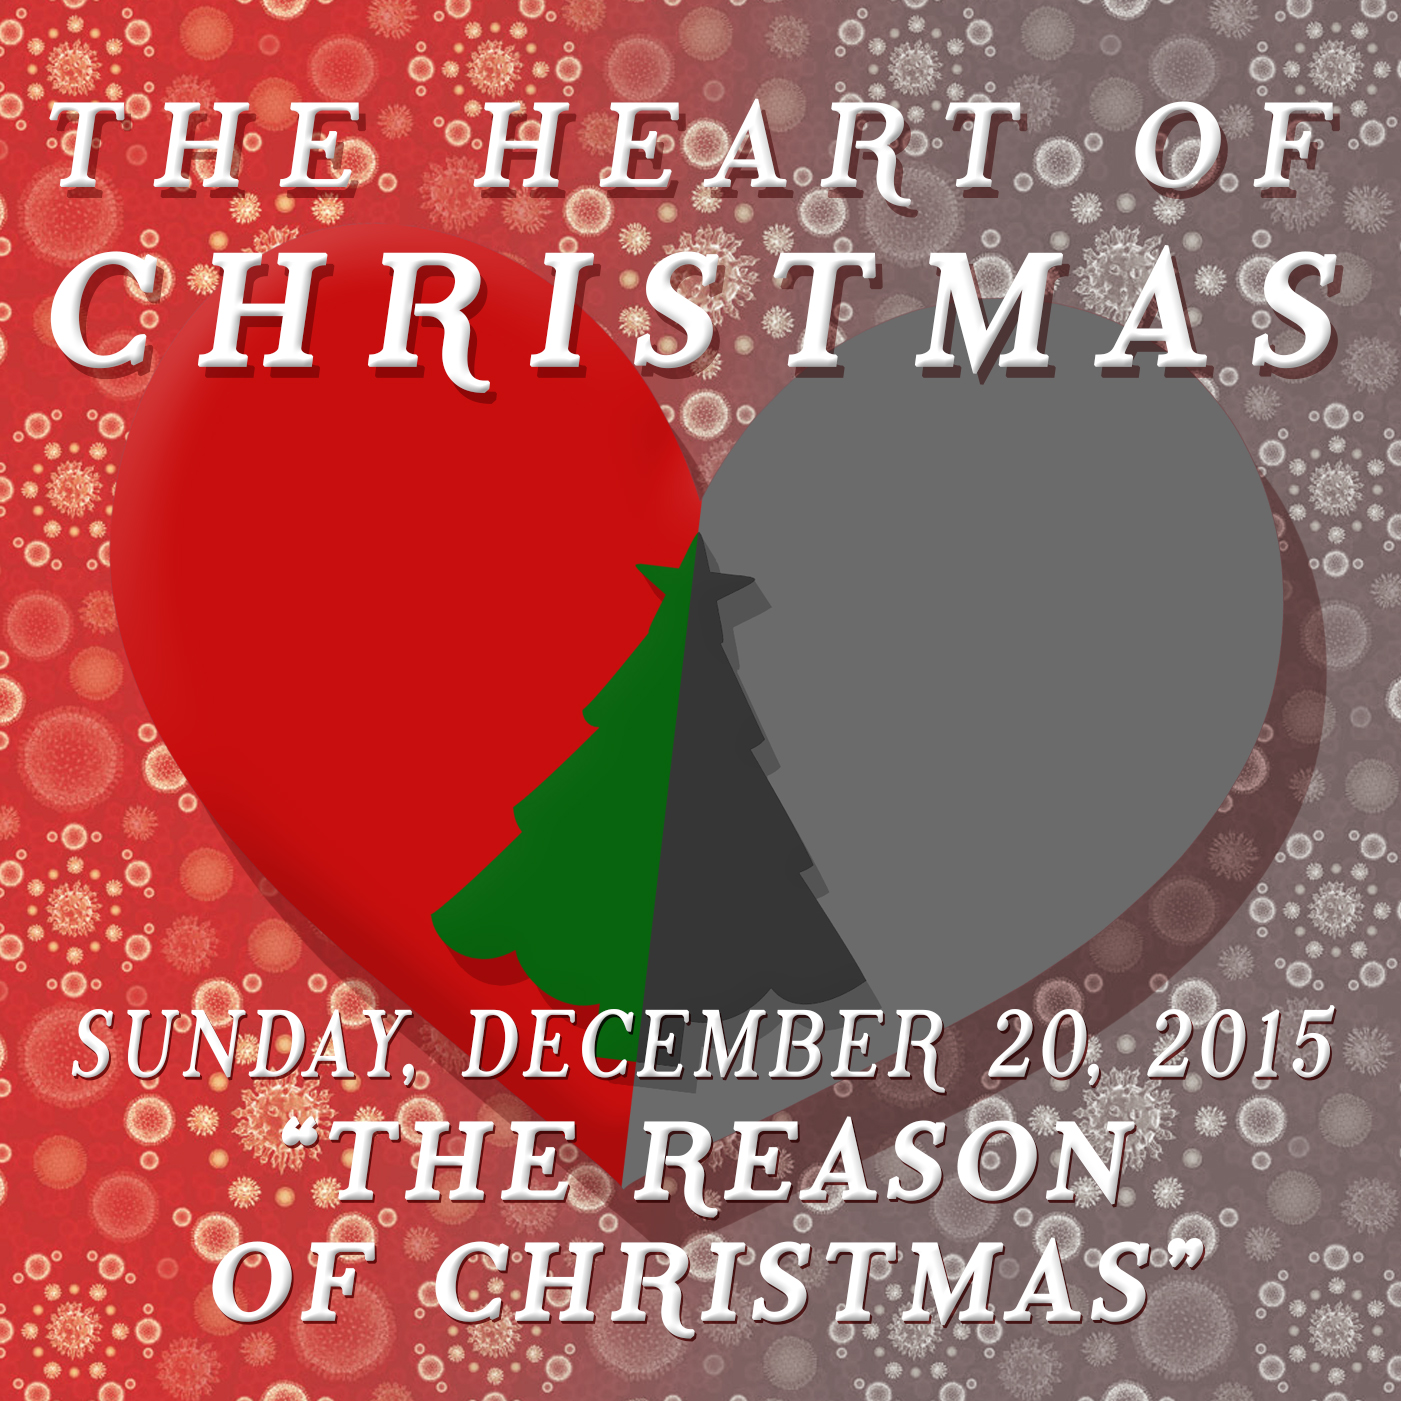 The Heart of Christmas Part 3: The Reason of Christmas